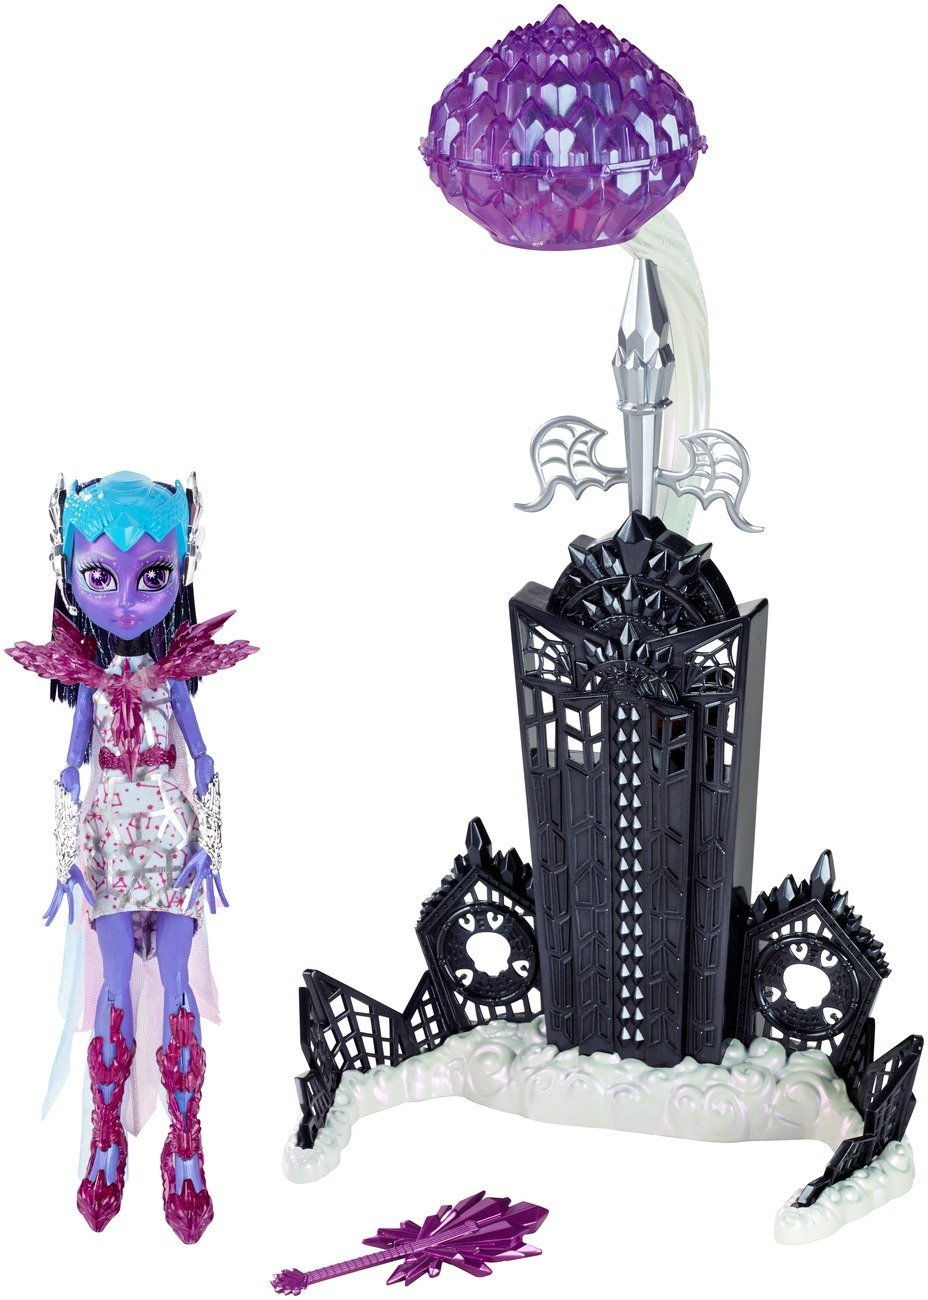 Mattel Monster High CHW58 - Buh York, Kometen-Schwebestation und Astranova